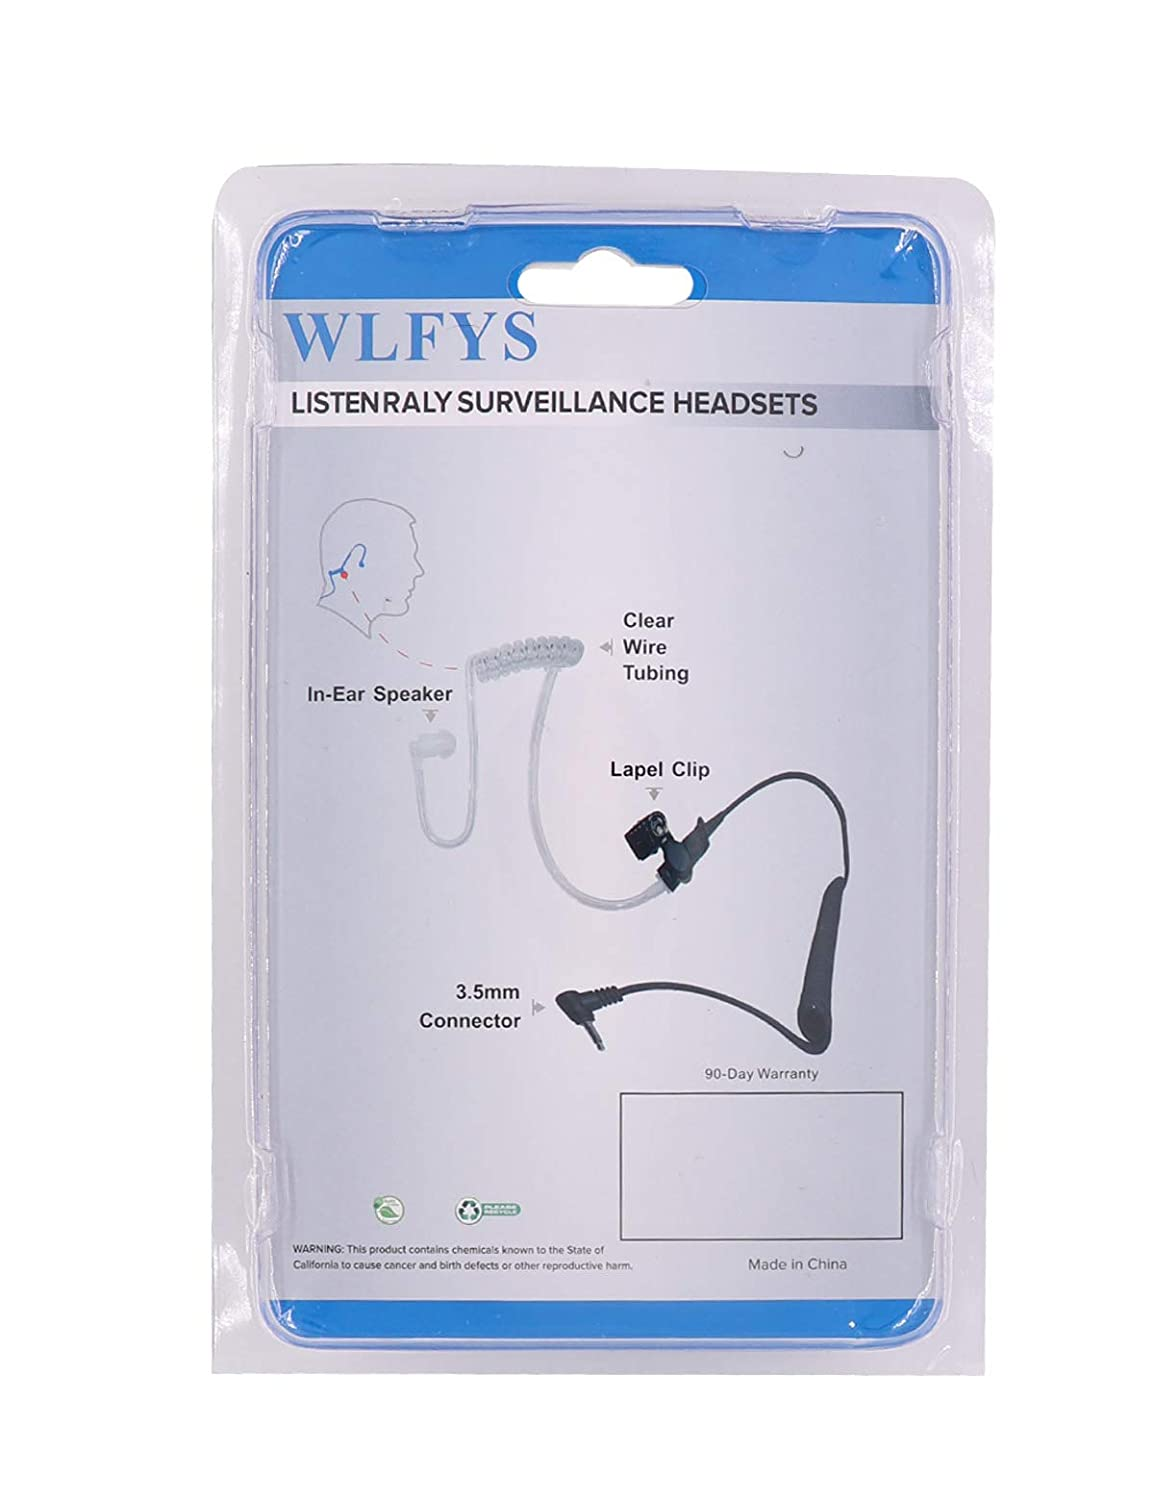 Wlfys 3.5mm Police Listen Only Acoustic Tube Earpiece with One Pair Medium Earmolds for Speaker Mics